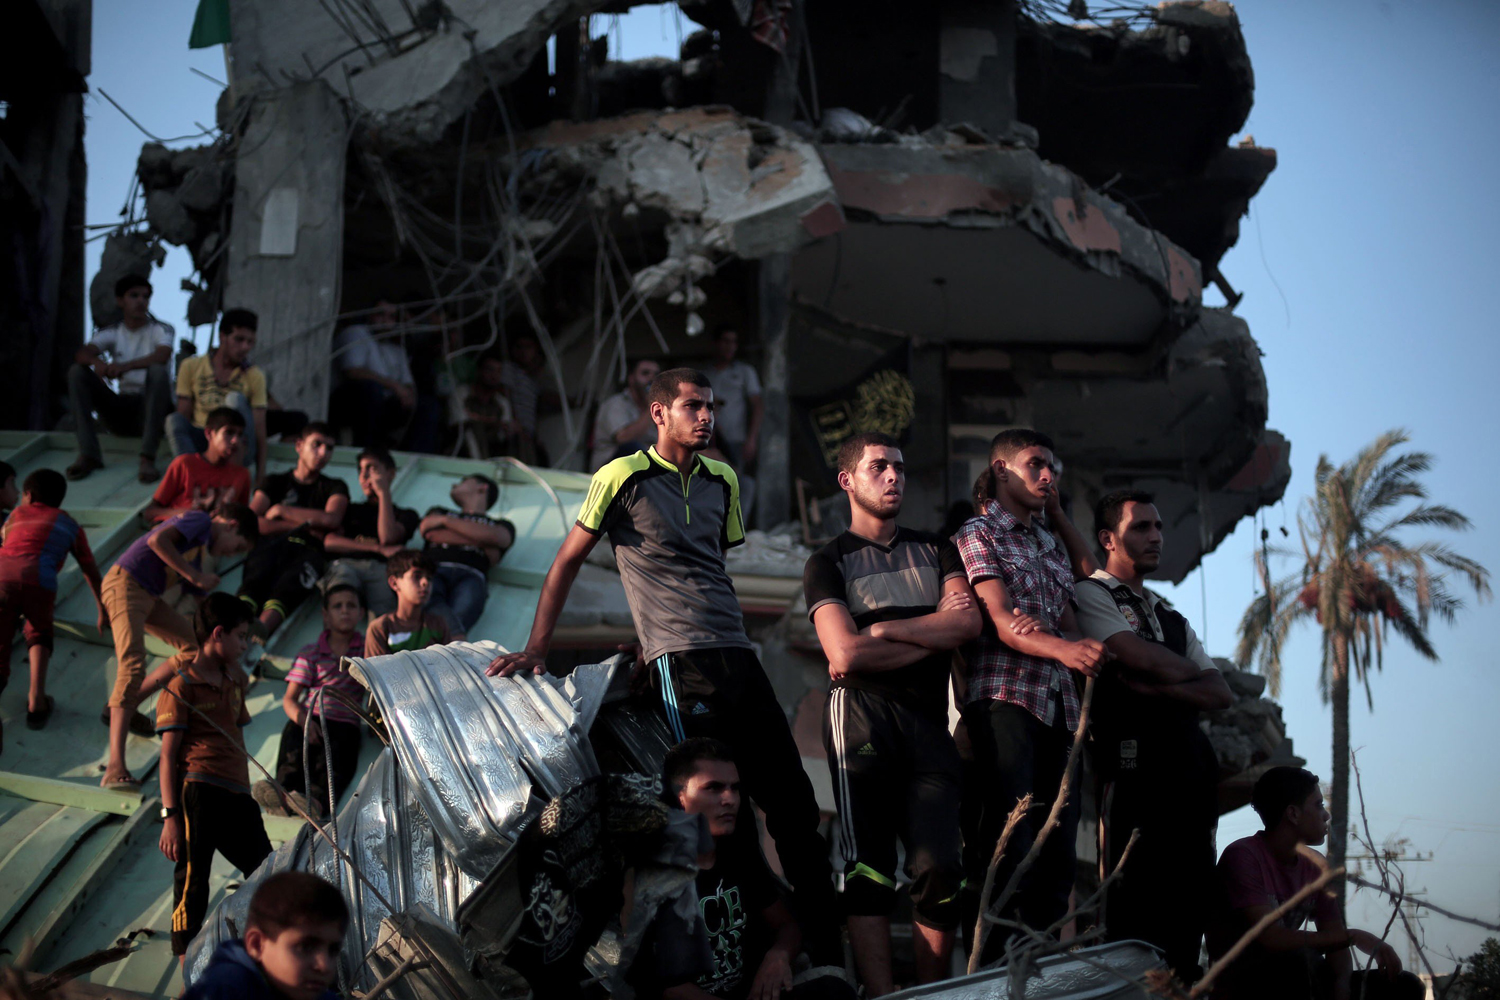 Aug. 27, 2014. Palestinian men listen the press statement of the members of the Ezzeddin al-Qassam Brigades, the armed wing of Palestinian resistance faction Hamas, in the Shujaya neighborhood in eastern Gaza City.